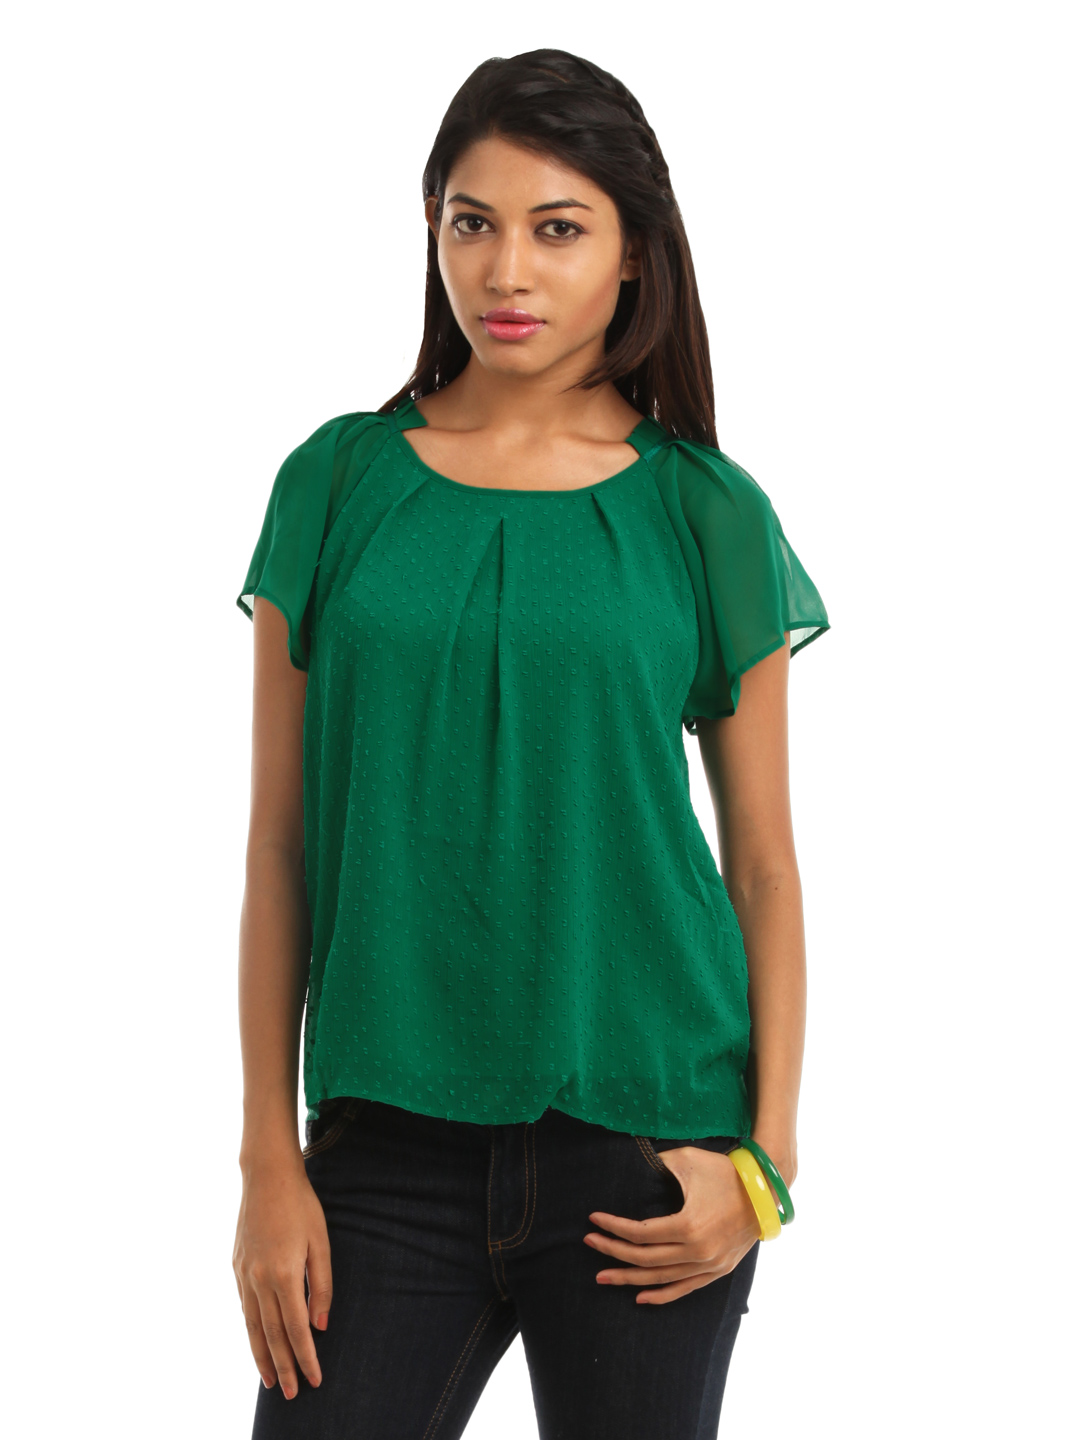 Vero Moda Women Green Top